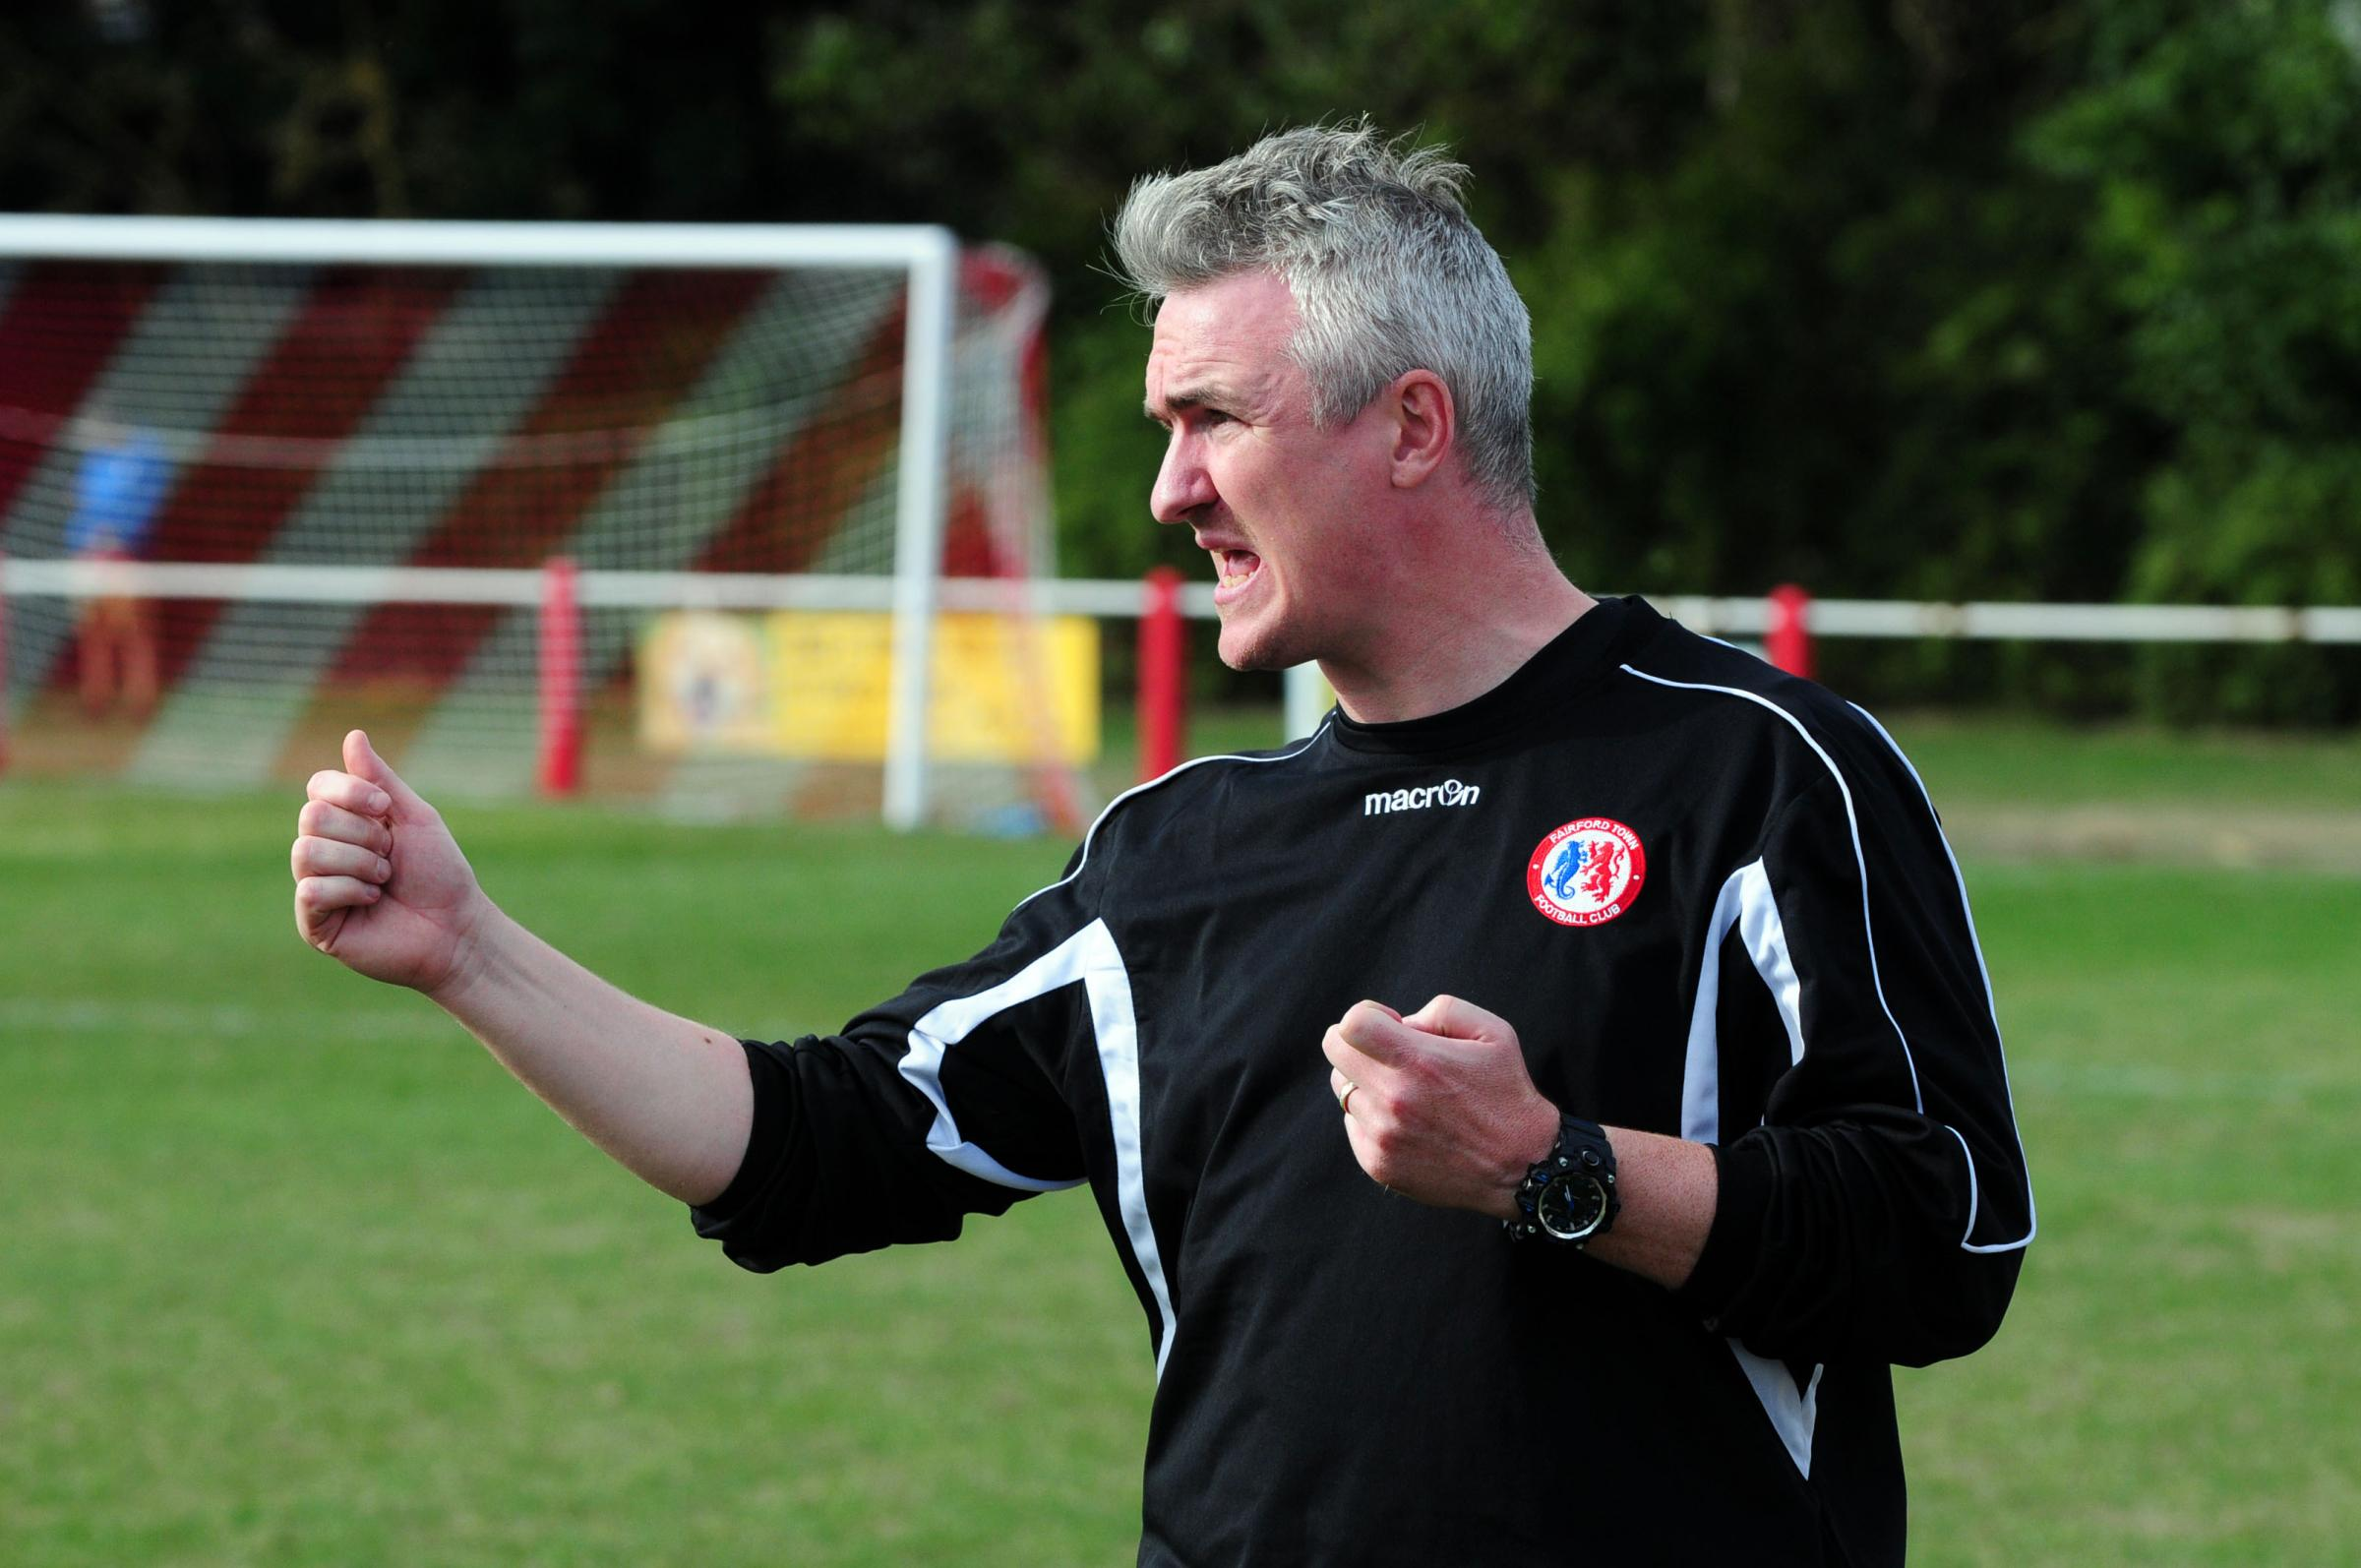 Fairford boss Jody Bevan